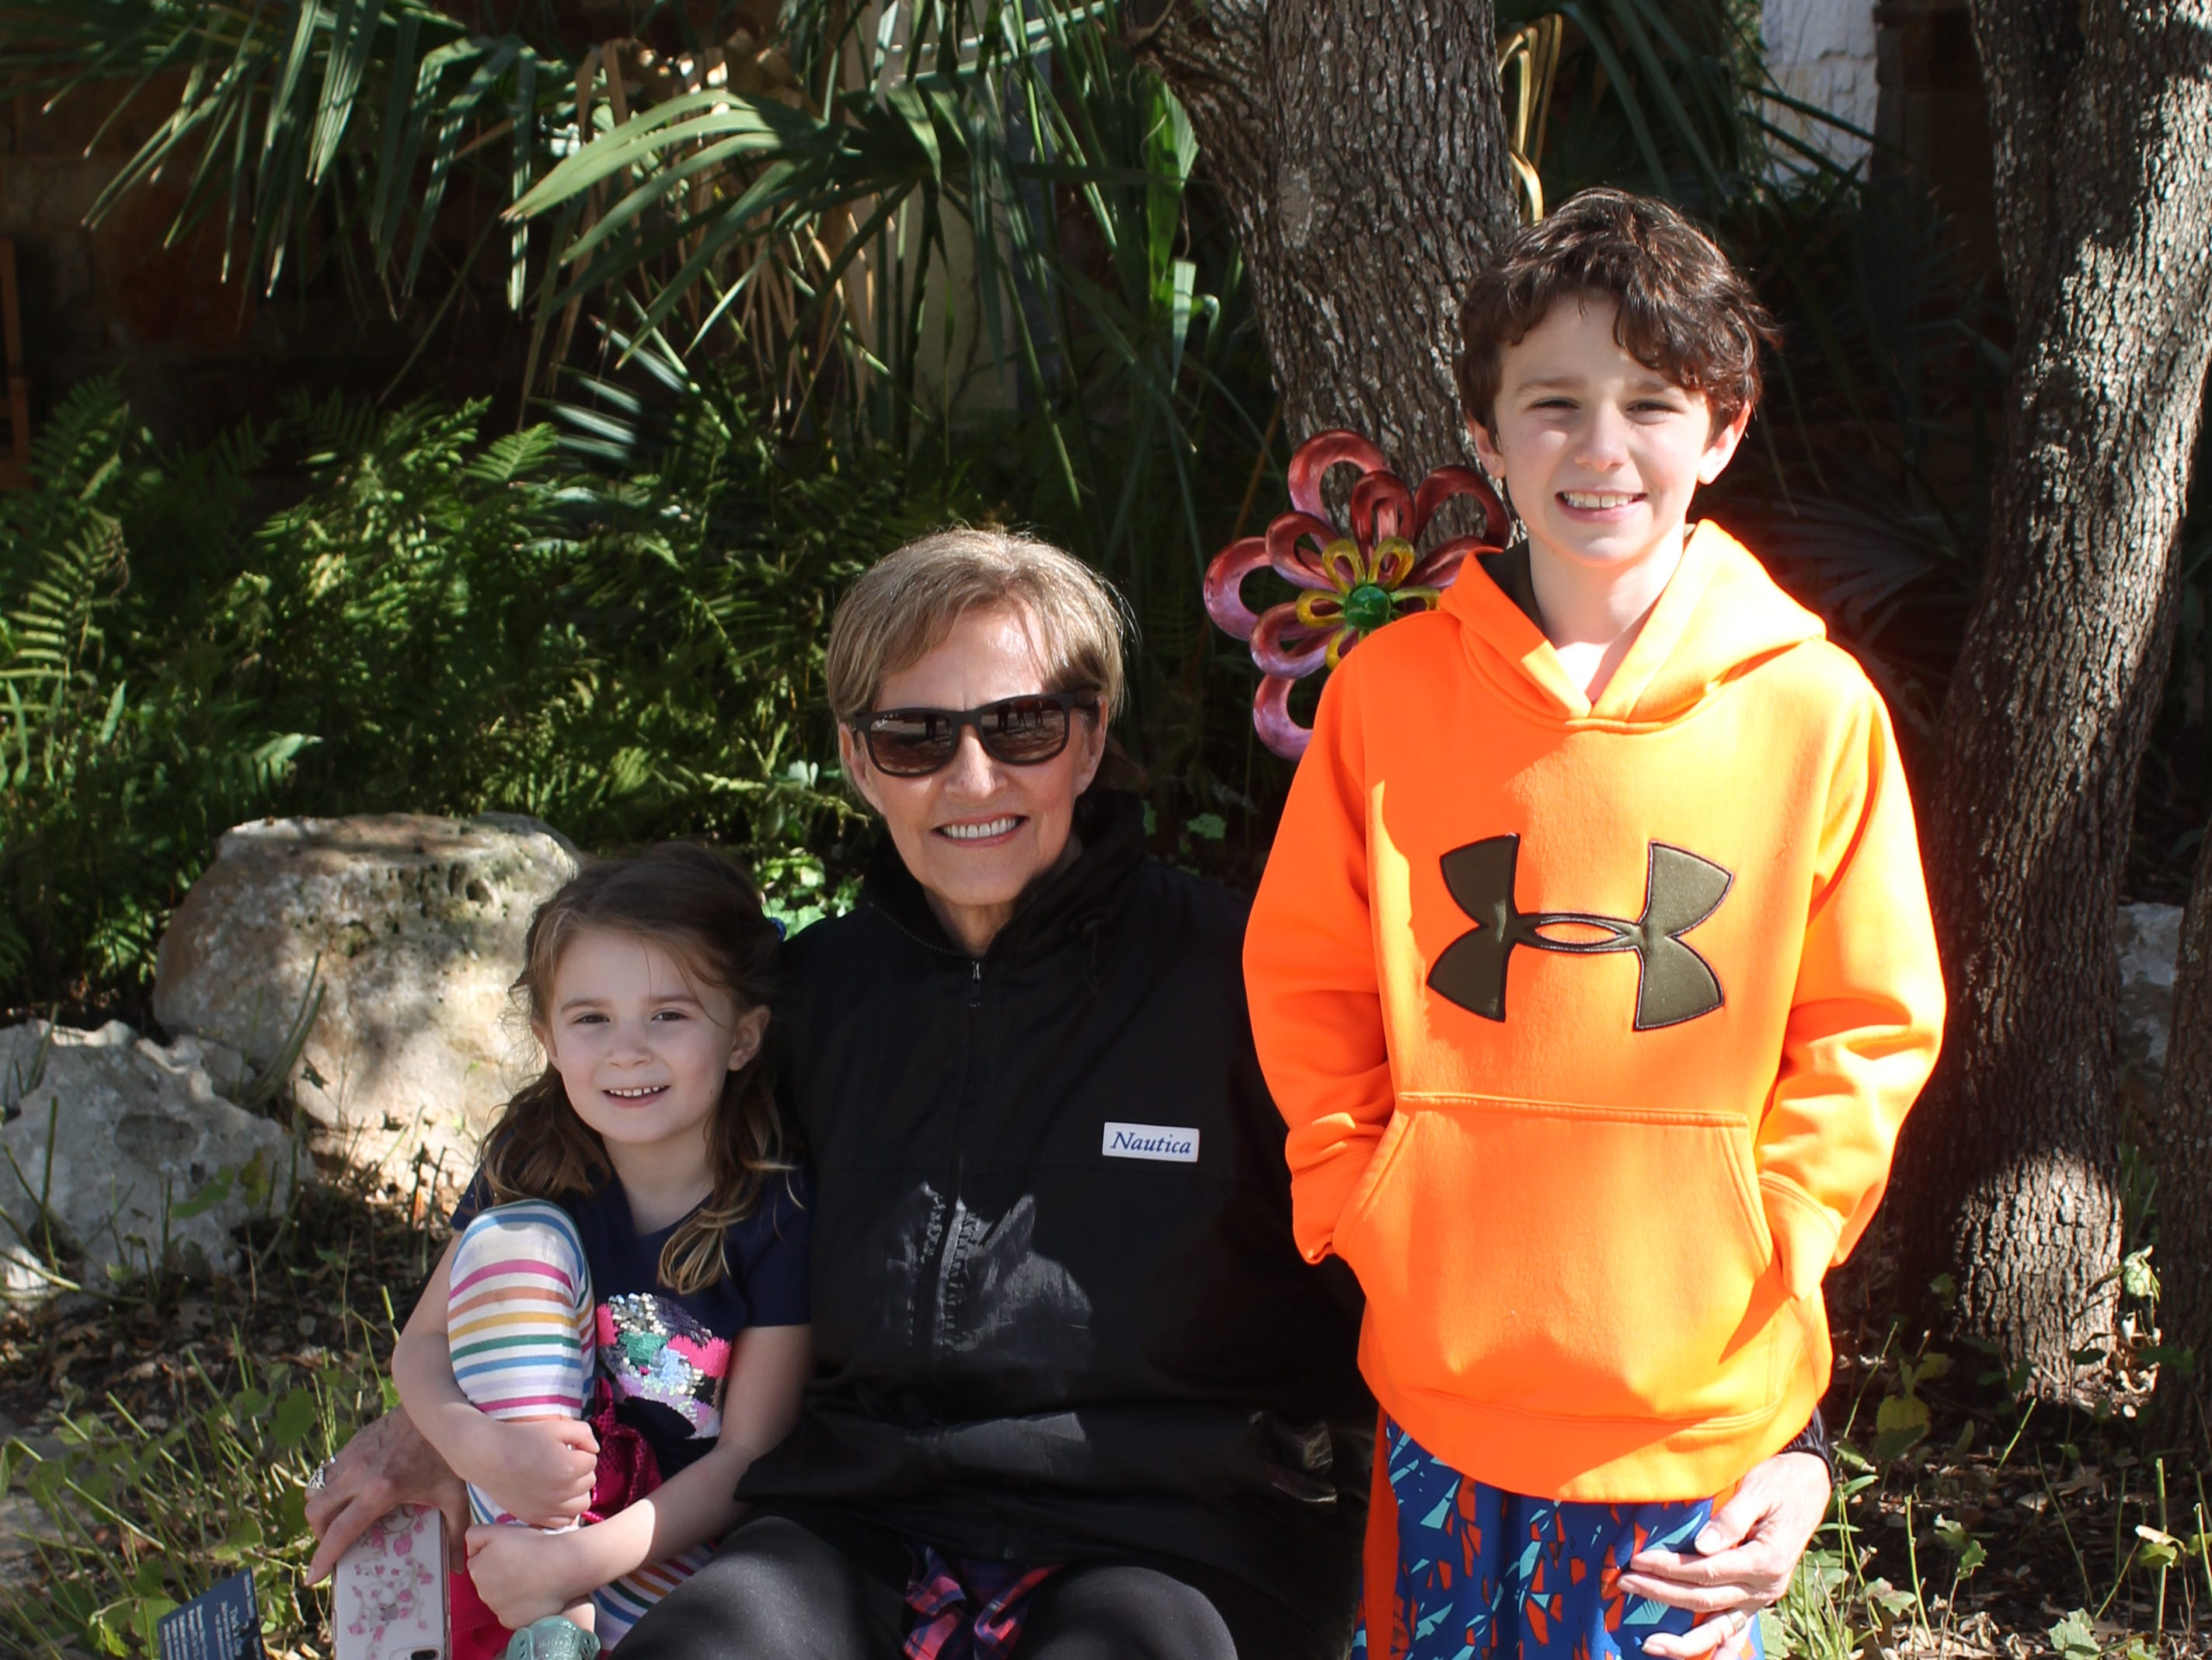 Dolores Compere of Baird visits the Lady Bird Johnson Wildflower Center with her grandchildren Sadie Belle and Dylan Compere of Austin.